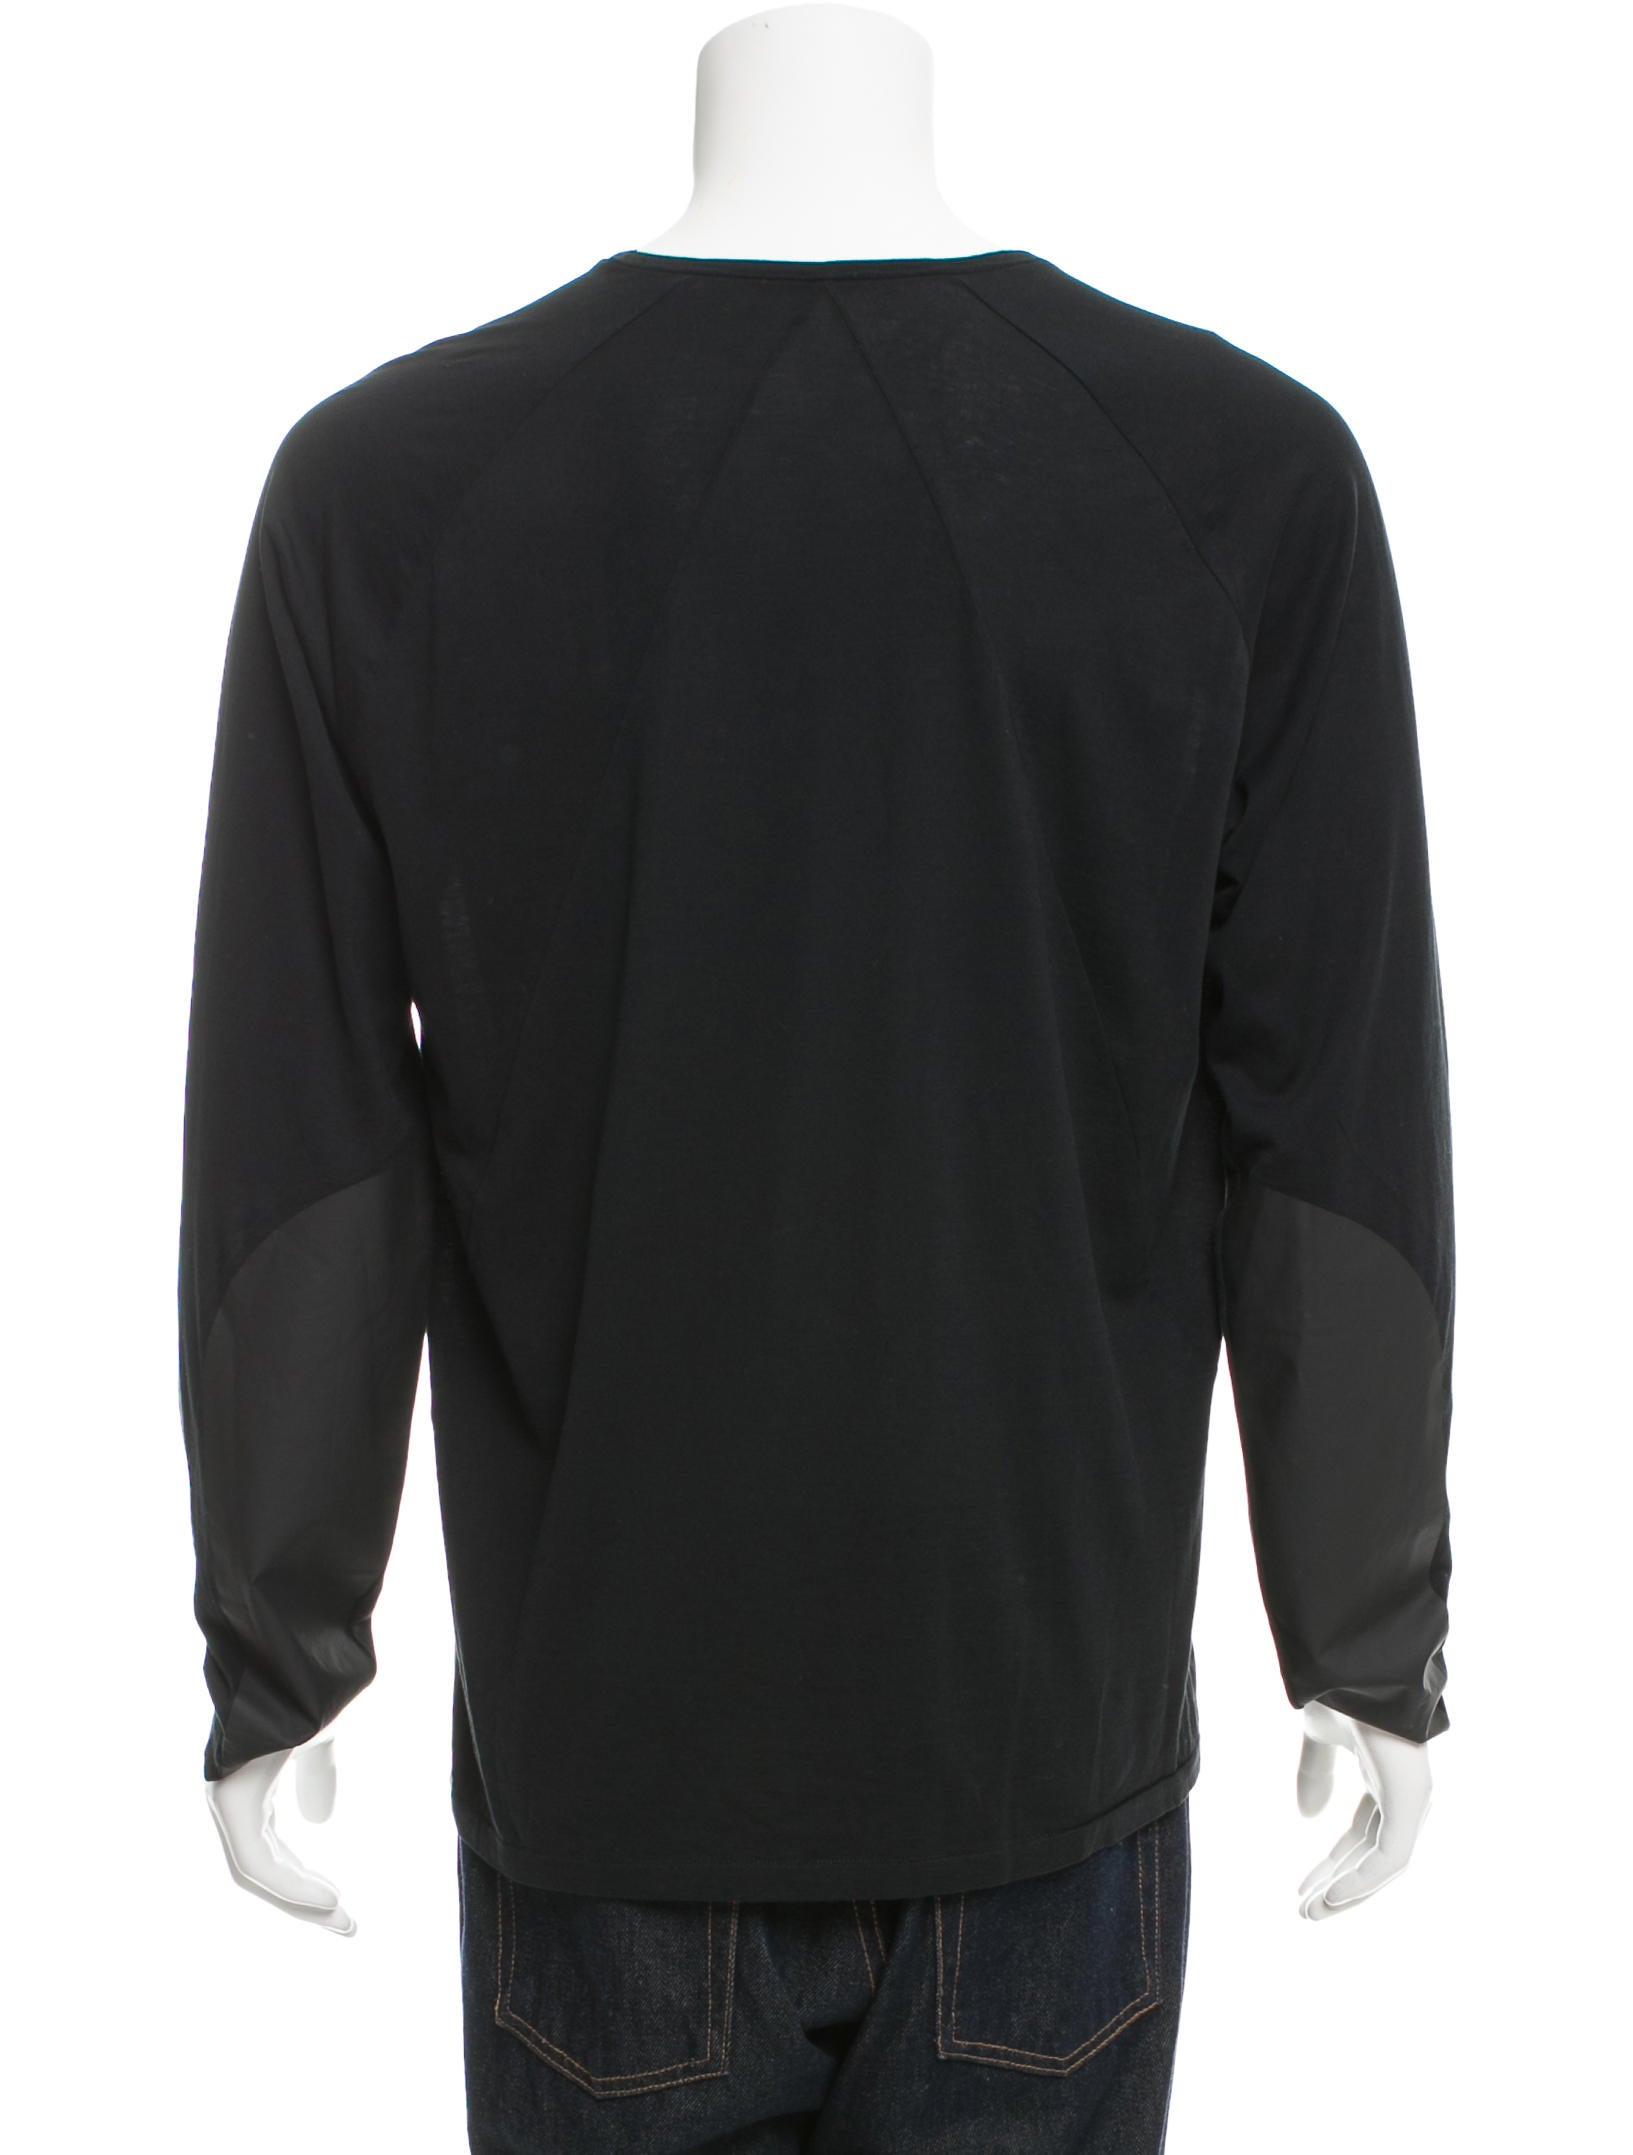 Bottega veneta crew neck long sleeve t shirt clothing for Bottega veneta t shirt